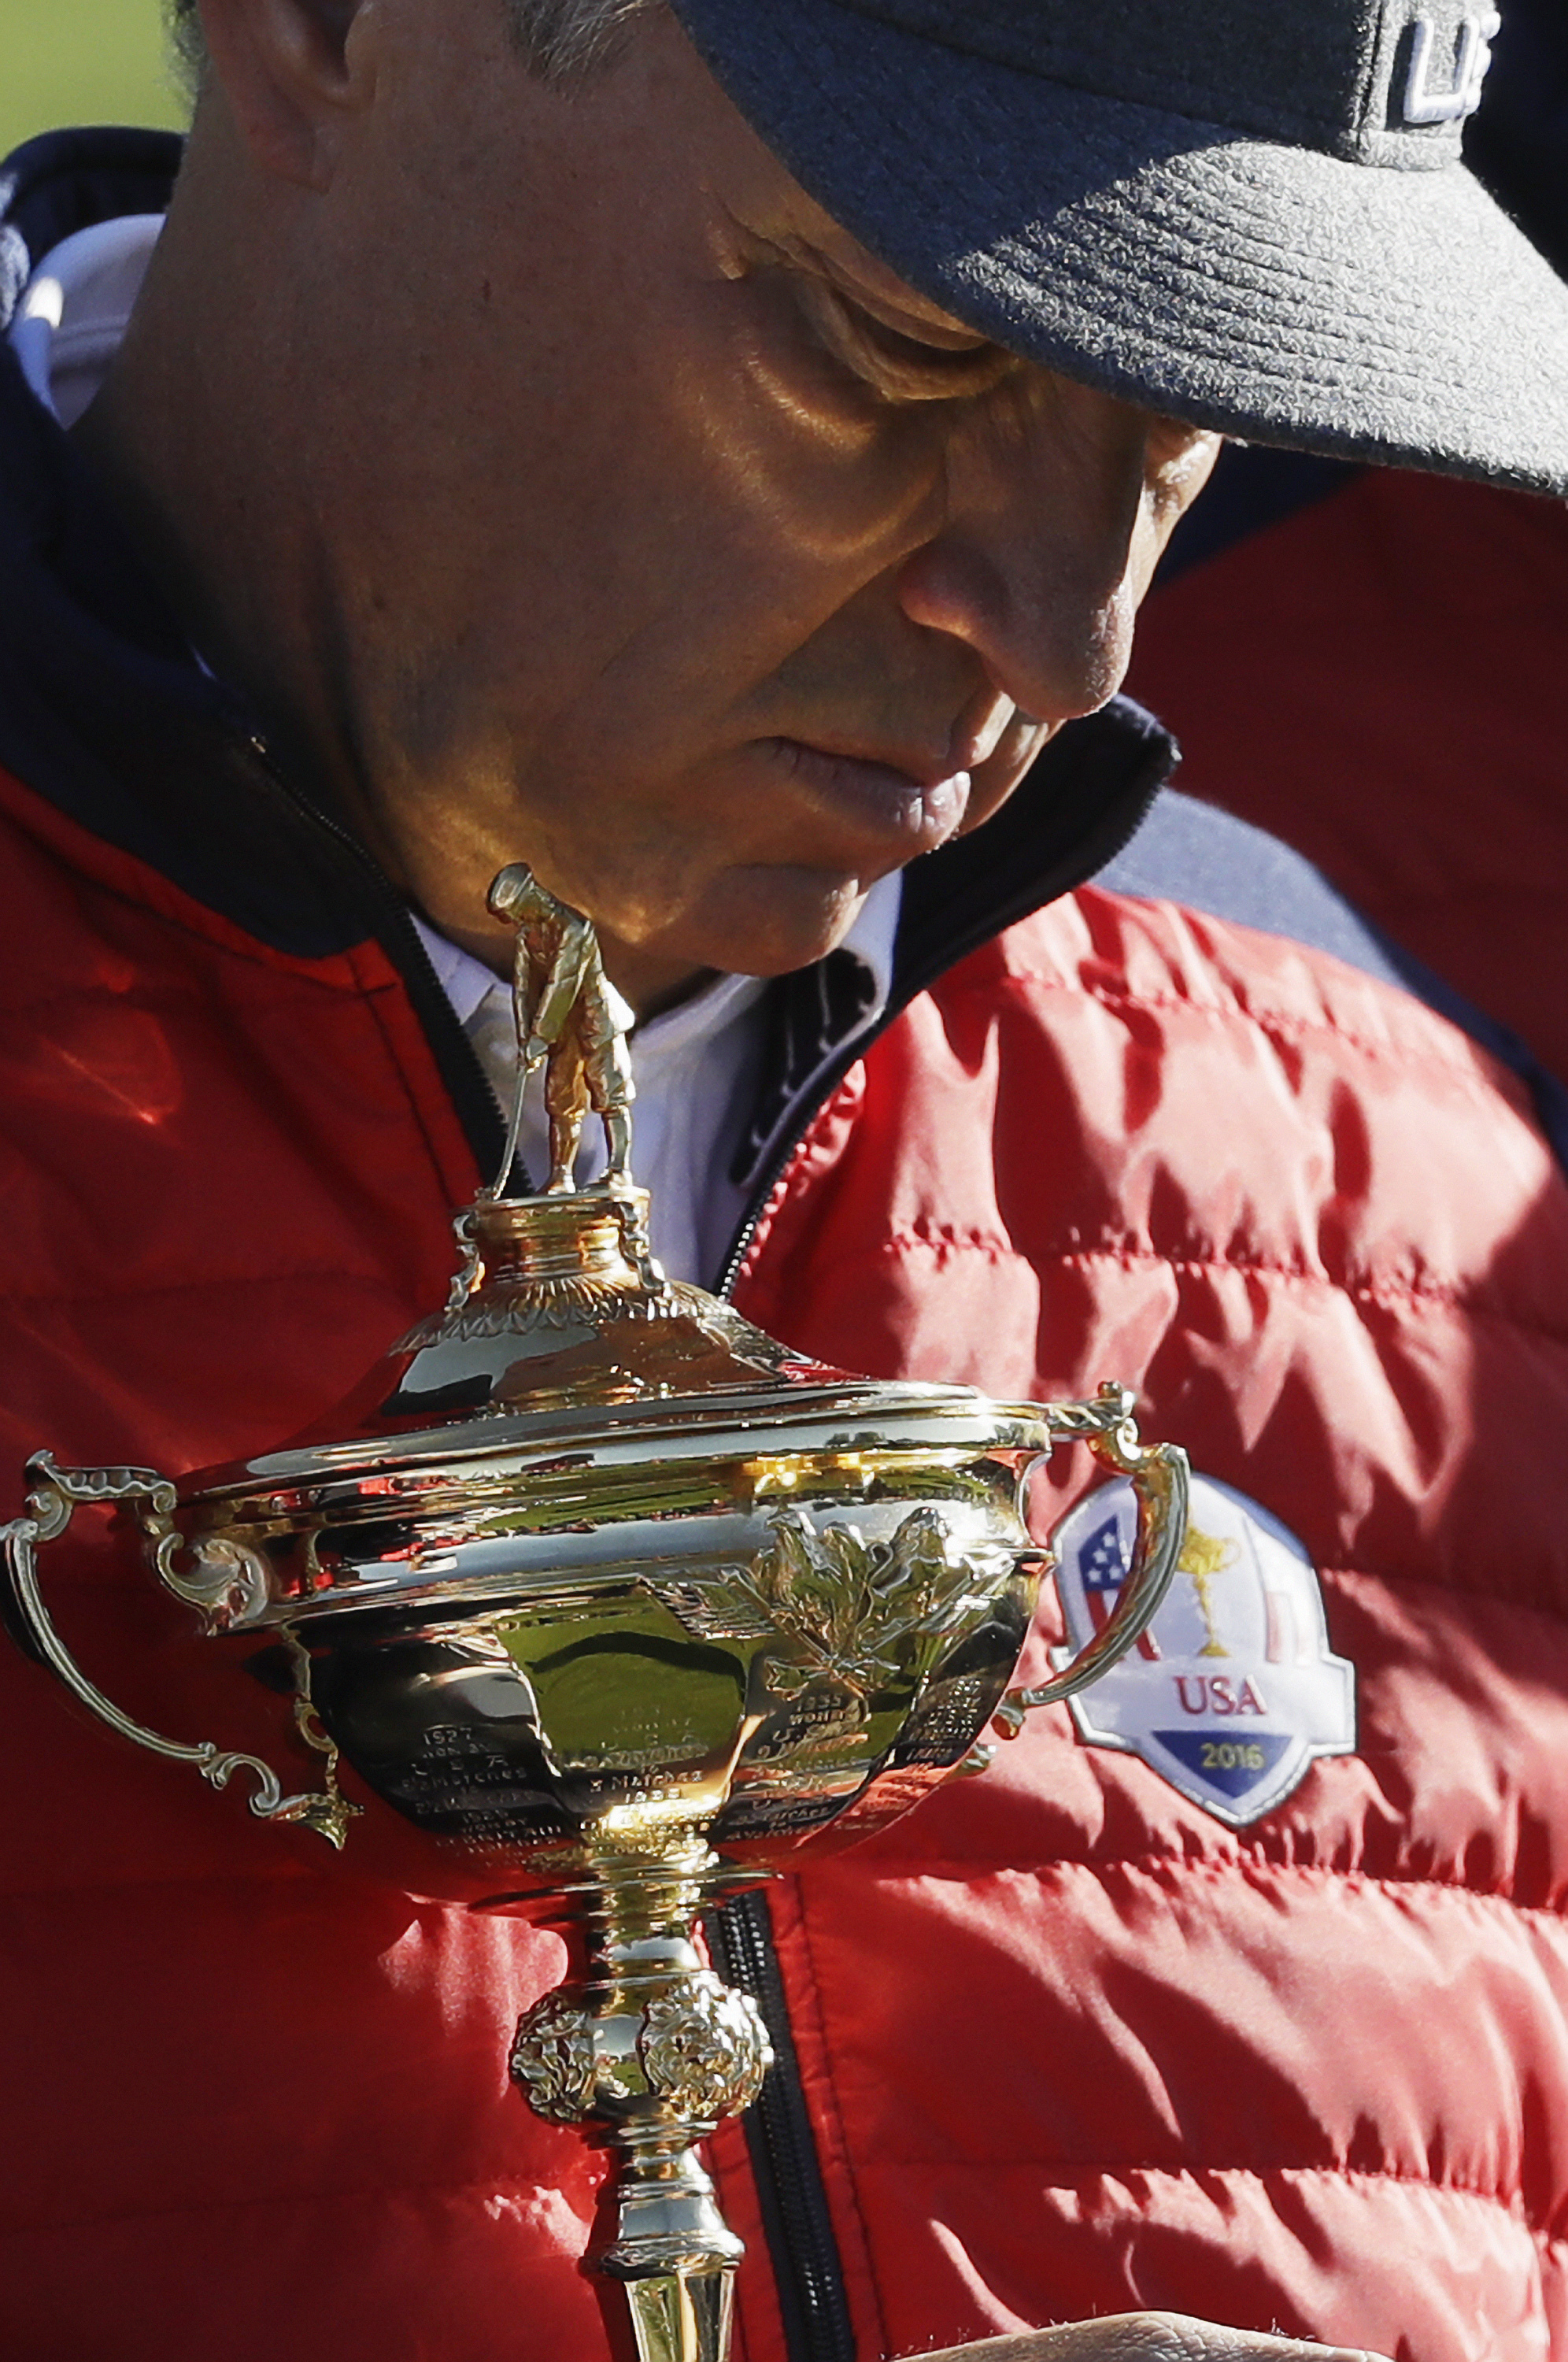 United States captain Davis Love III holds the Ryder Cup before a practice round for the Ryder Cup golf tournament Tuesday, Sept. 27, 2016, at Hazeltine National Golf Club in Chaska, Minn. (AP Photo/Chris Carlson)